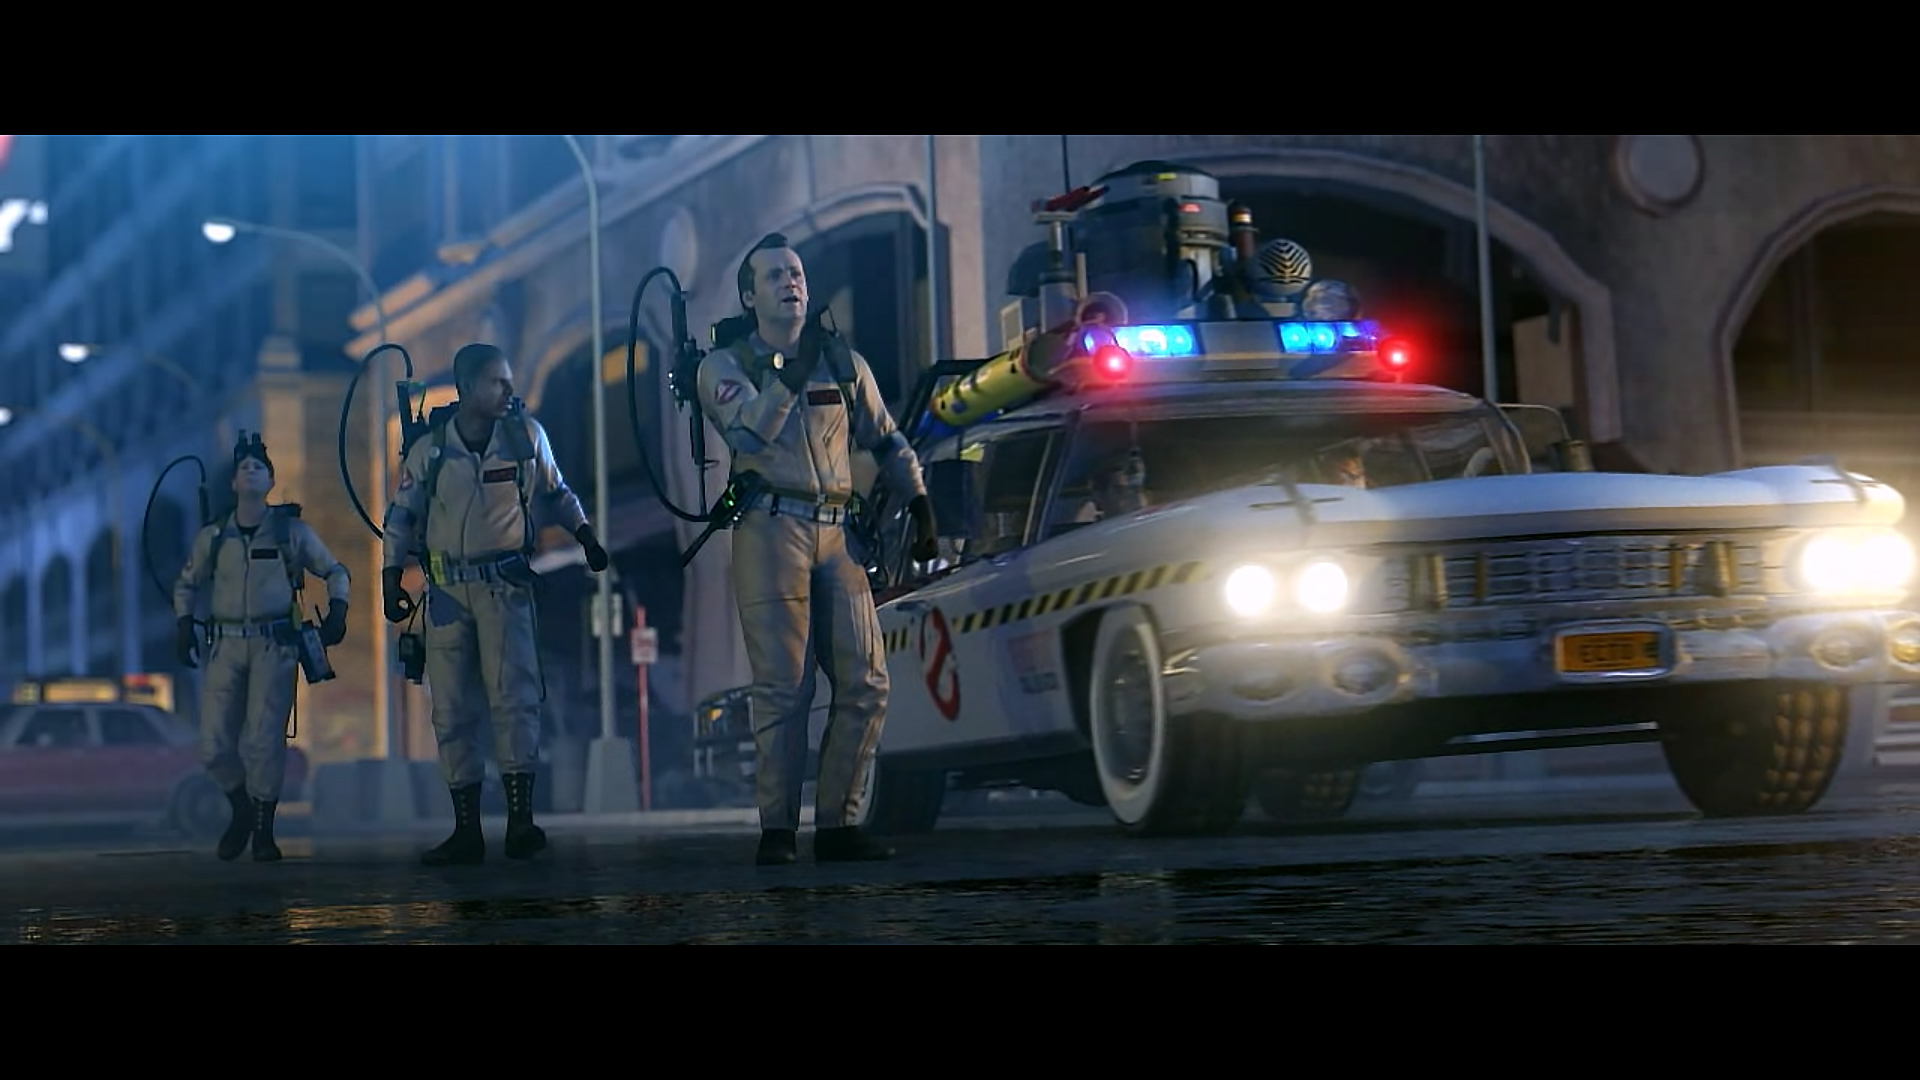 Ghostbusters: The Video Game Gets a High-Res Remaster This